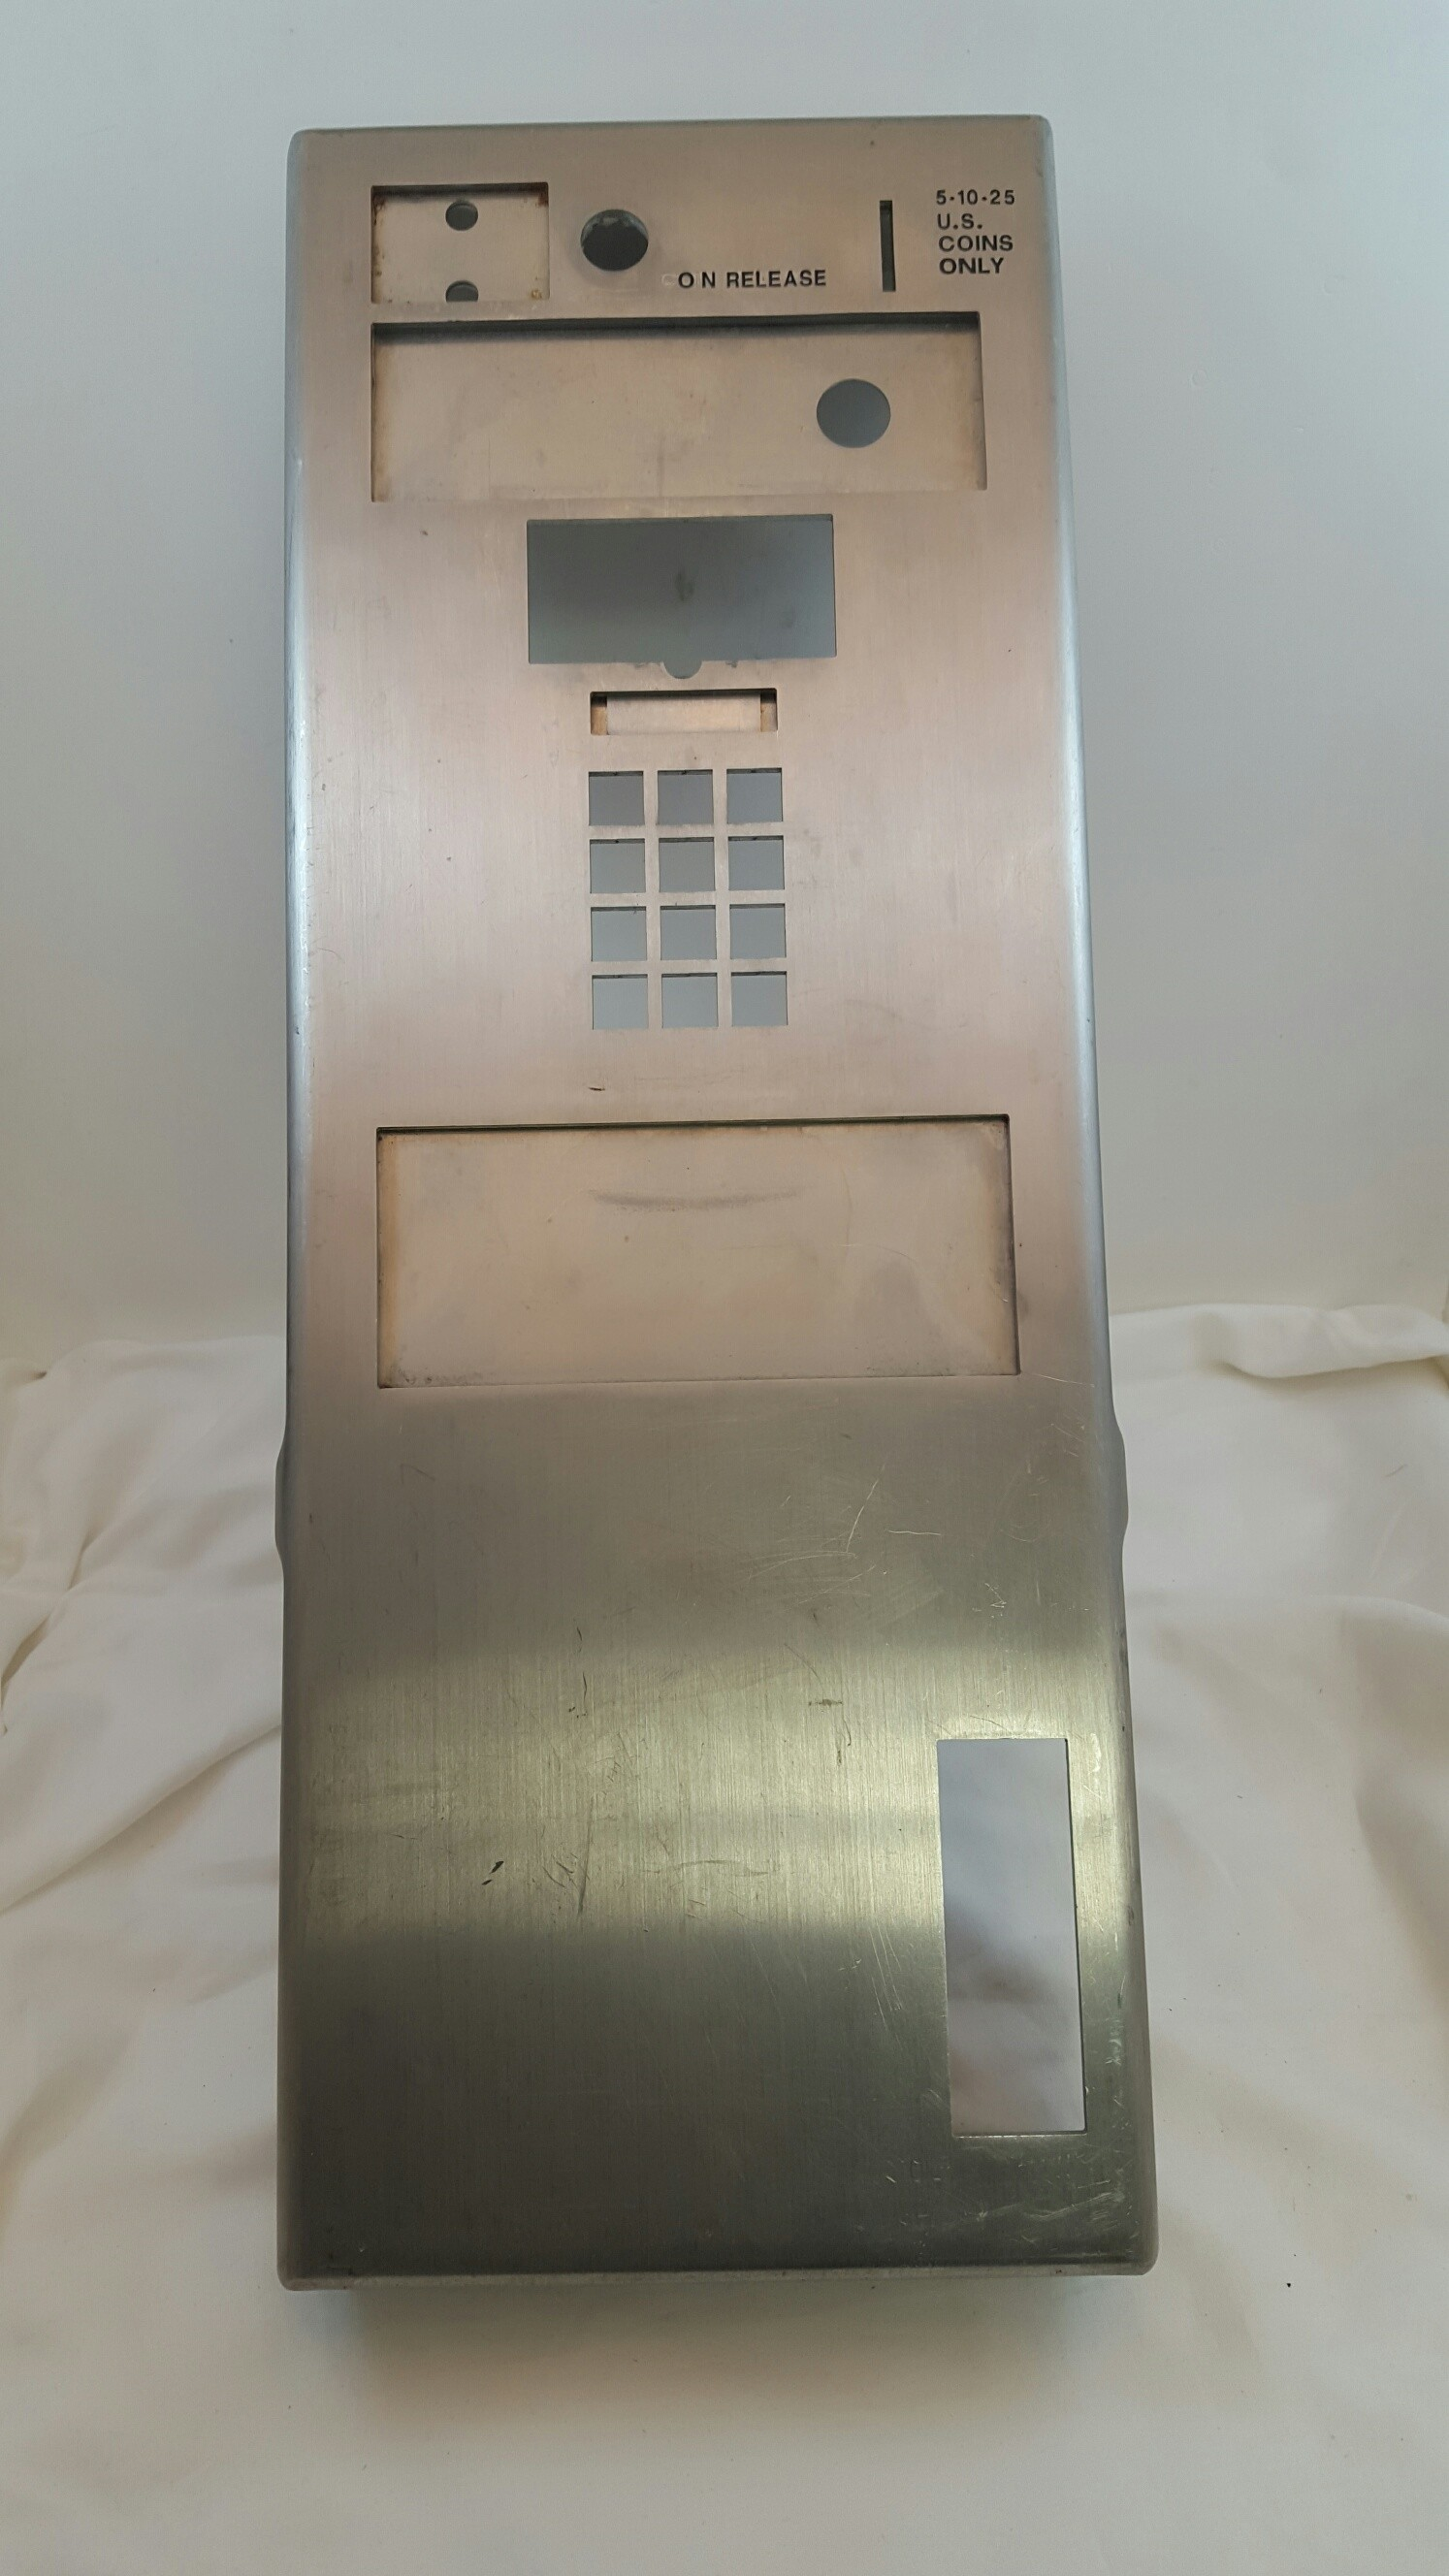 Refurbished One-piece Payphone Armor